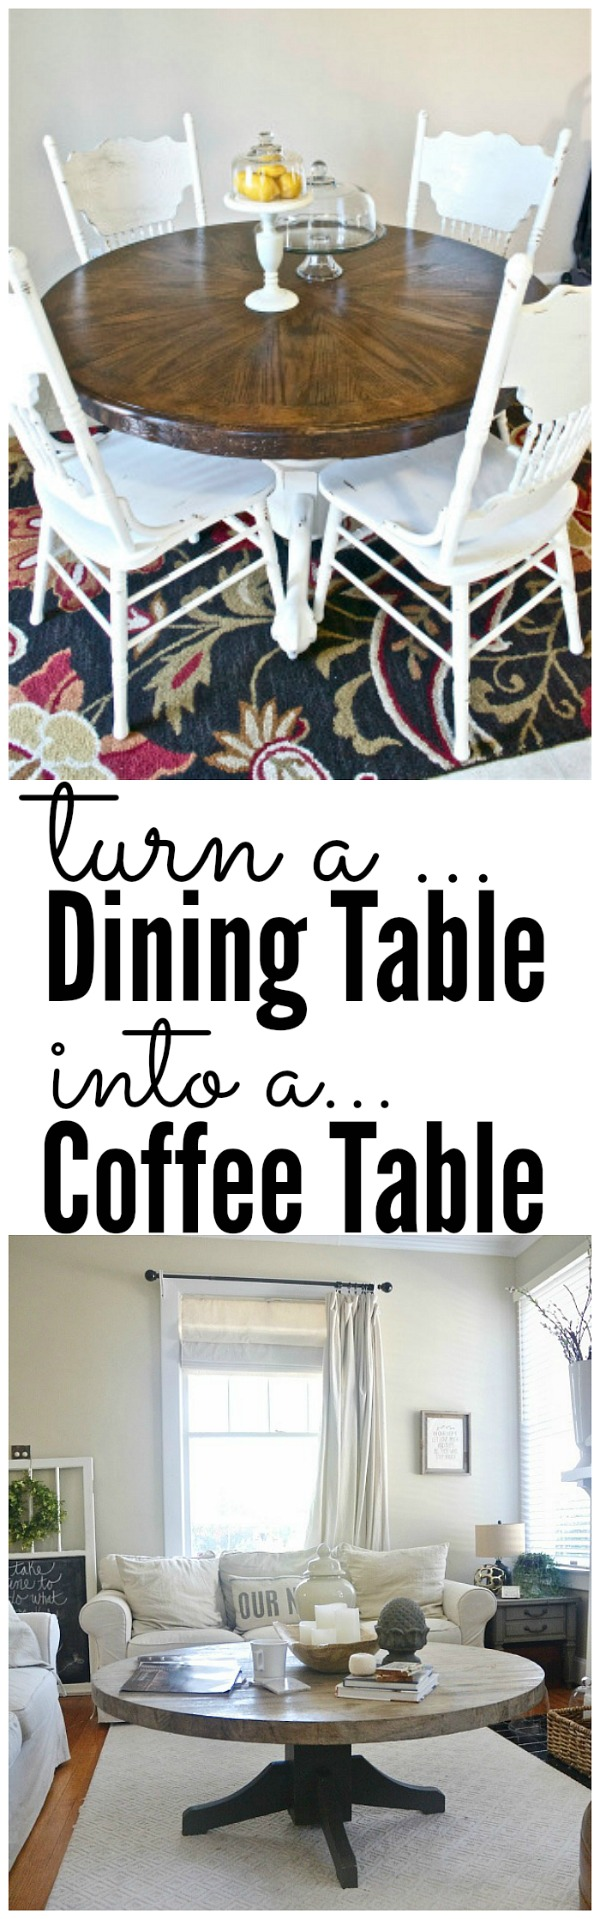 DIY rustic round coffee table - Turn a dining table into a coffee table easily!